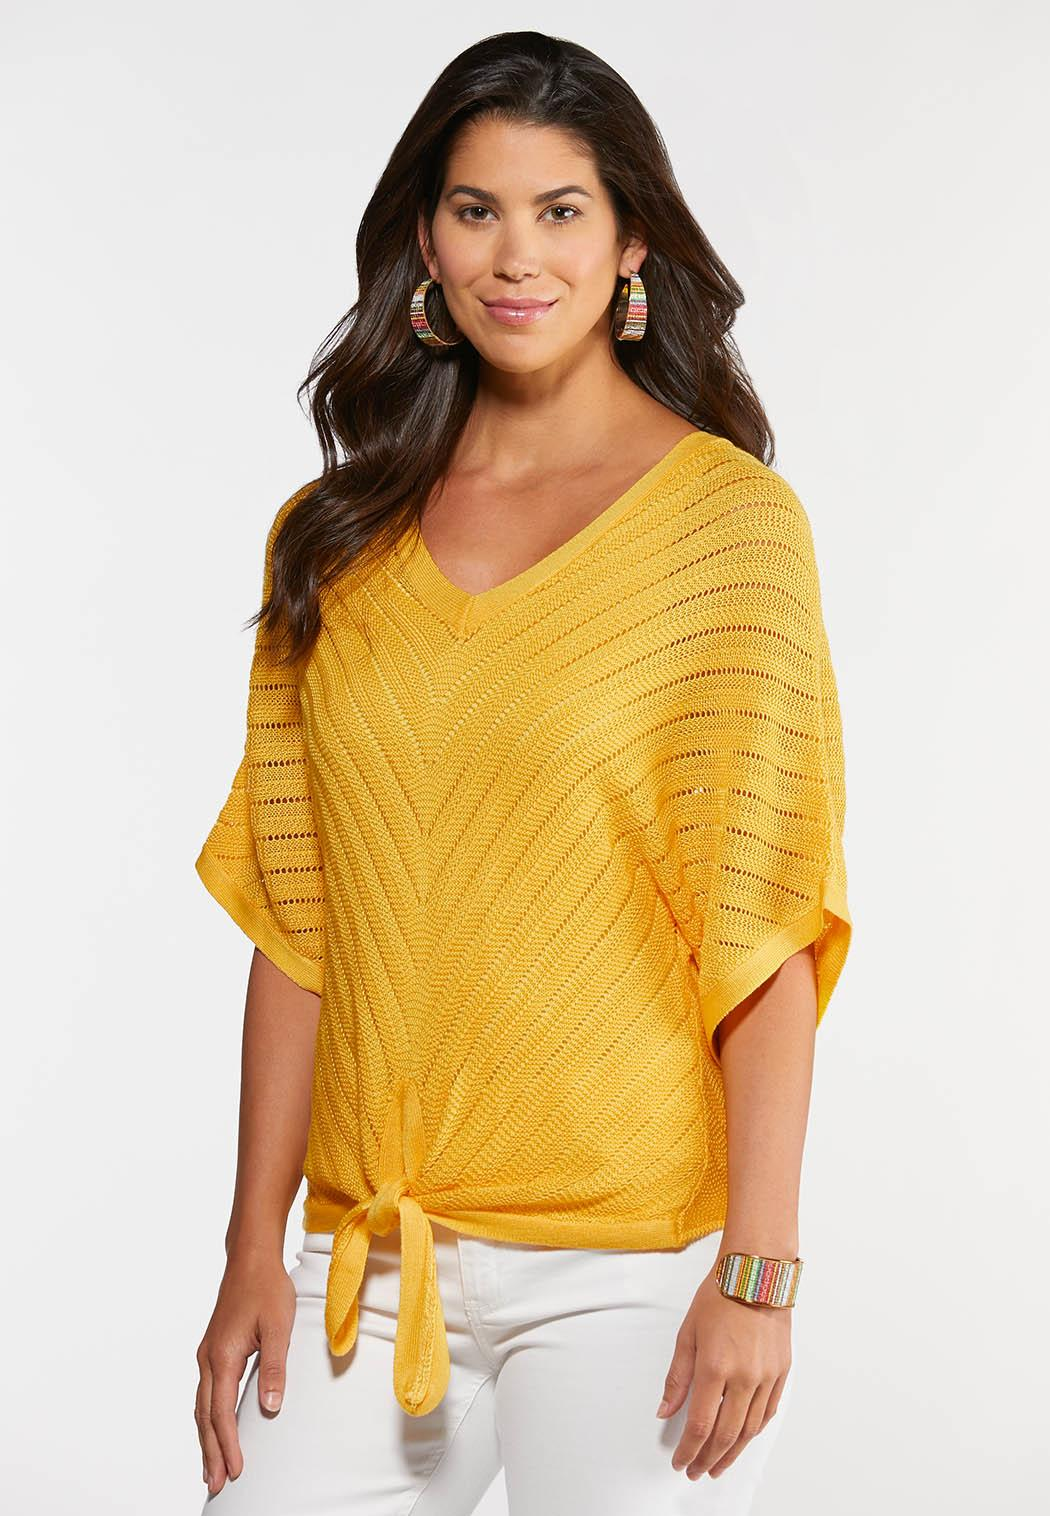 Plus Size Summer Sweater Top